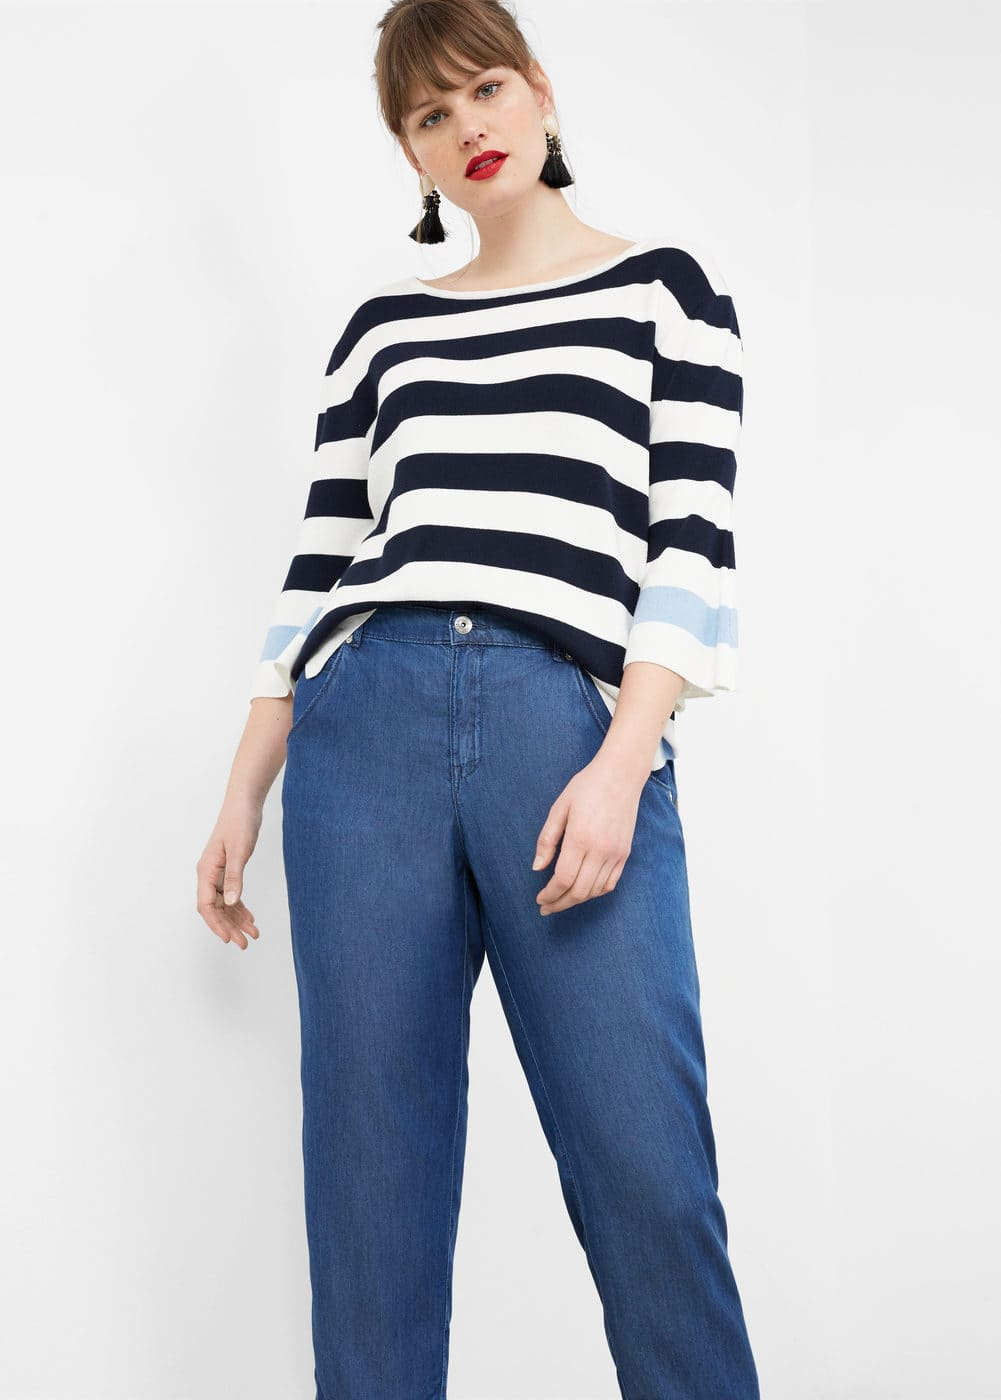 Ruffled soft jeans | VIOLETA BY MANGO